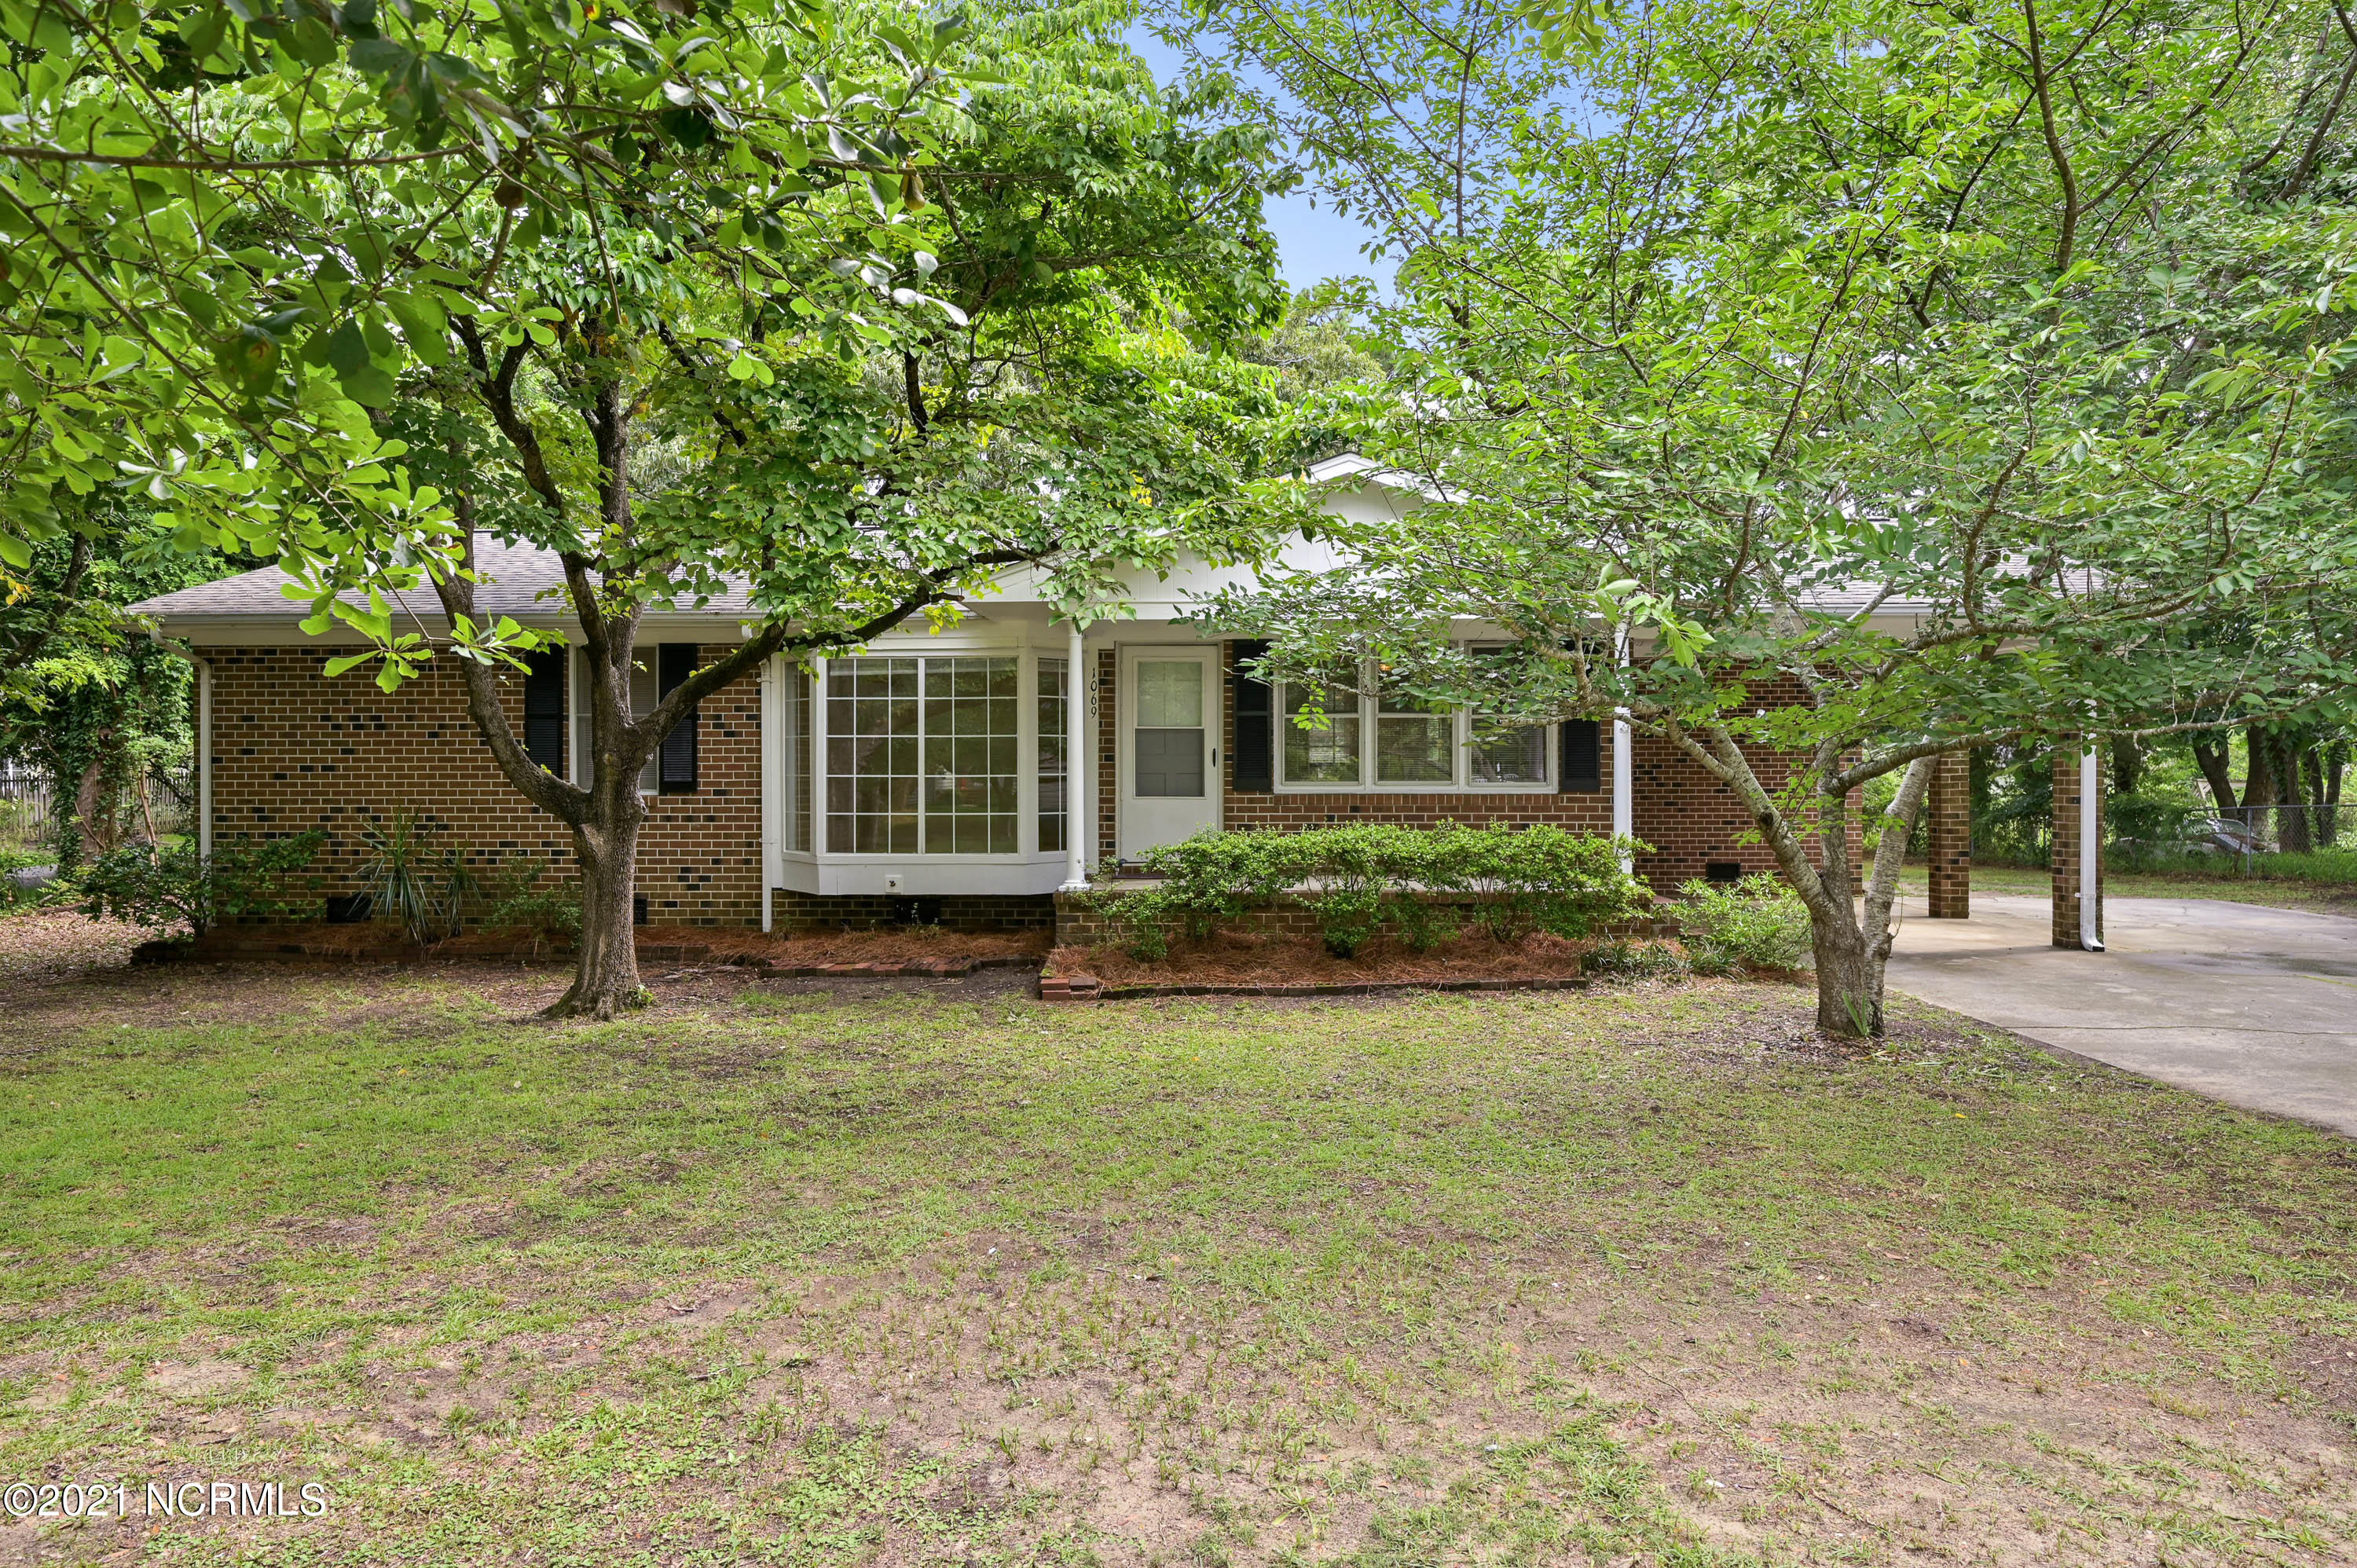 Come see this charming brick ranch situated steps from the Intercoastal!  This 3 BR 2 Bath home with remodel potential is perfectly located between Topsail Beach and Wilmington.  From the porch you can see the boats on the intercoastal surrounded by stunning mature trees to add a bit of privacy.  The spacious back yard also features a 600 sq ft garage.  Come take a look at this fantastic property while it lasts!